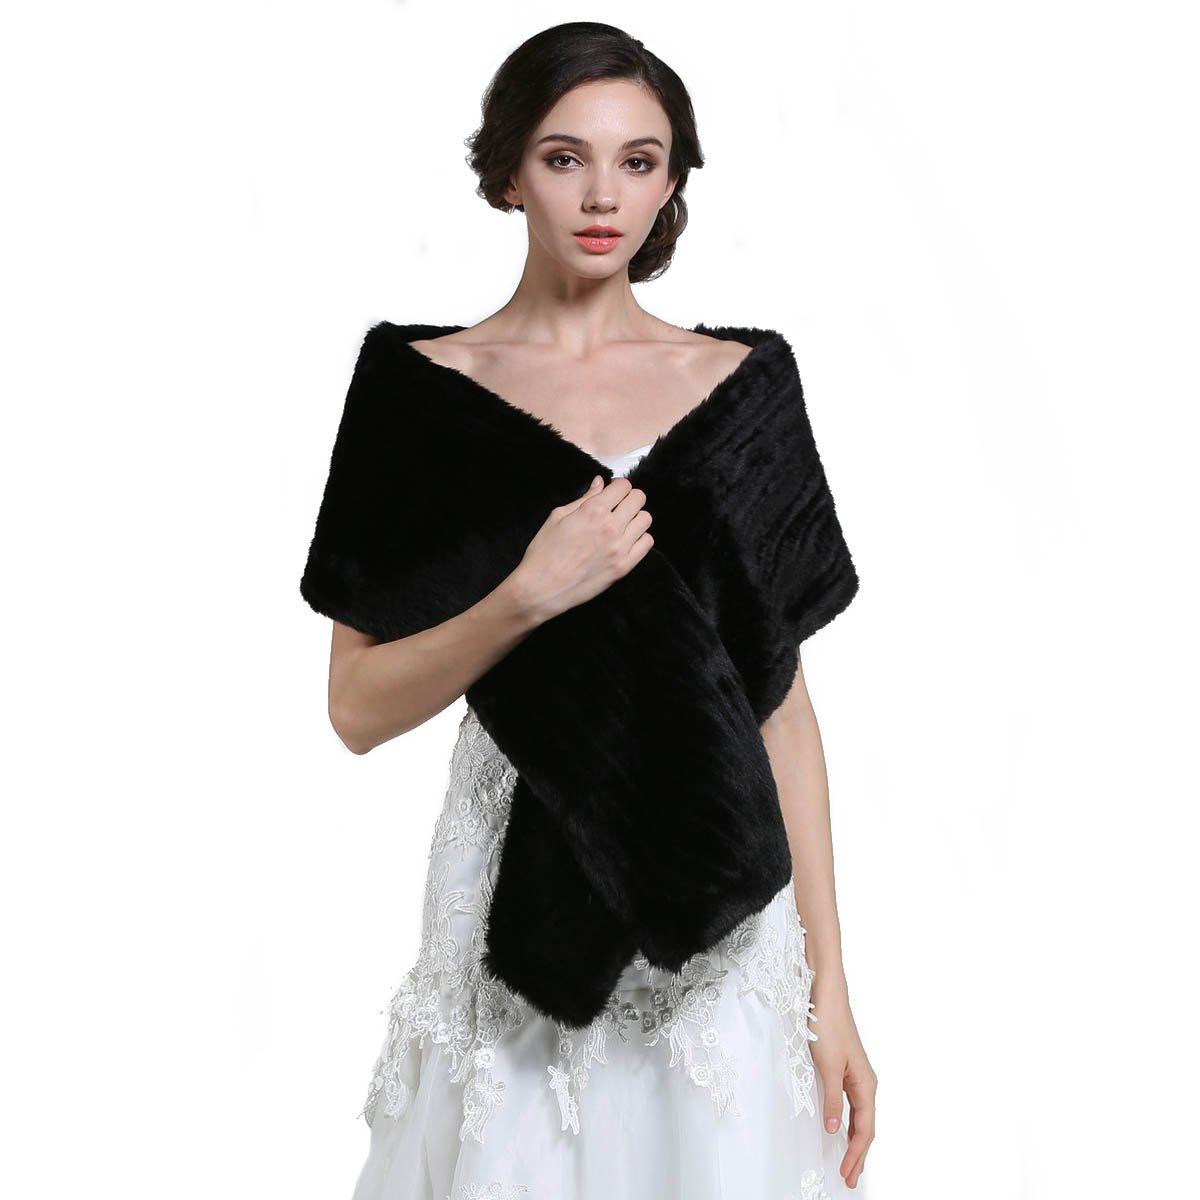 Aukmla Women's Faux Fur Shawls and Wraps Bridal Wedding Stole (Black)